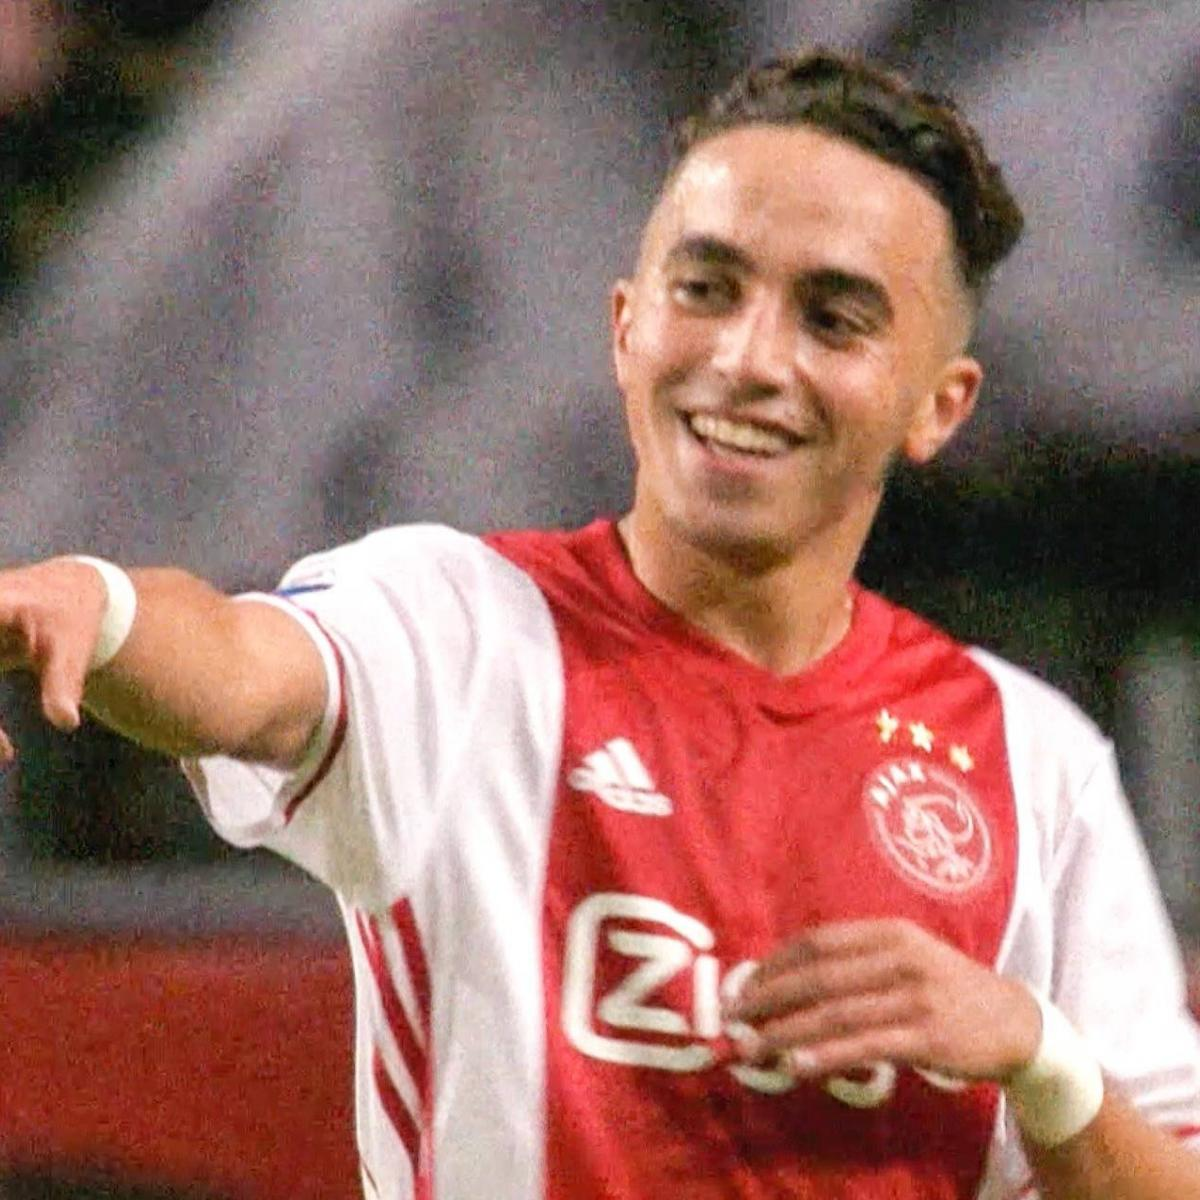 Tottenham Vs Ajax Live Stream Twitter: Appie Nouri's Career Carries On In The Hearts Of His